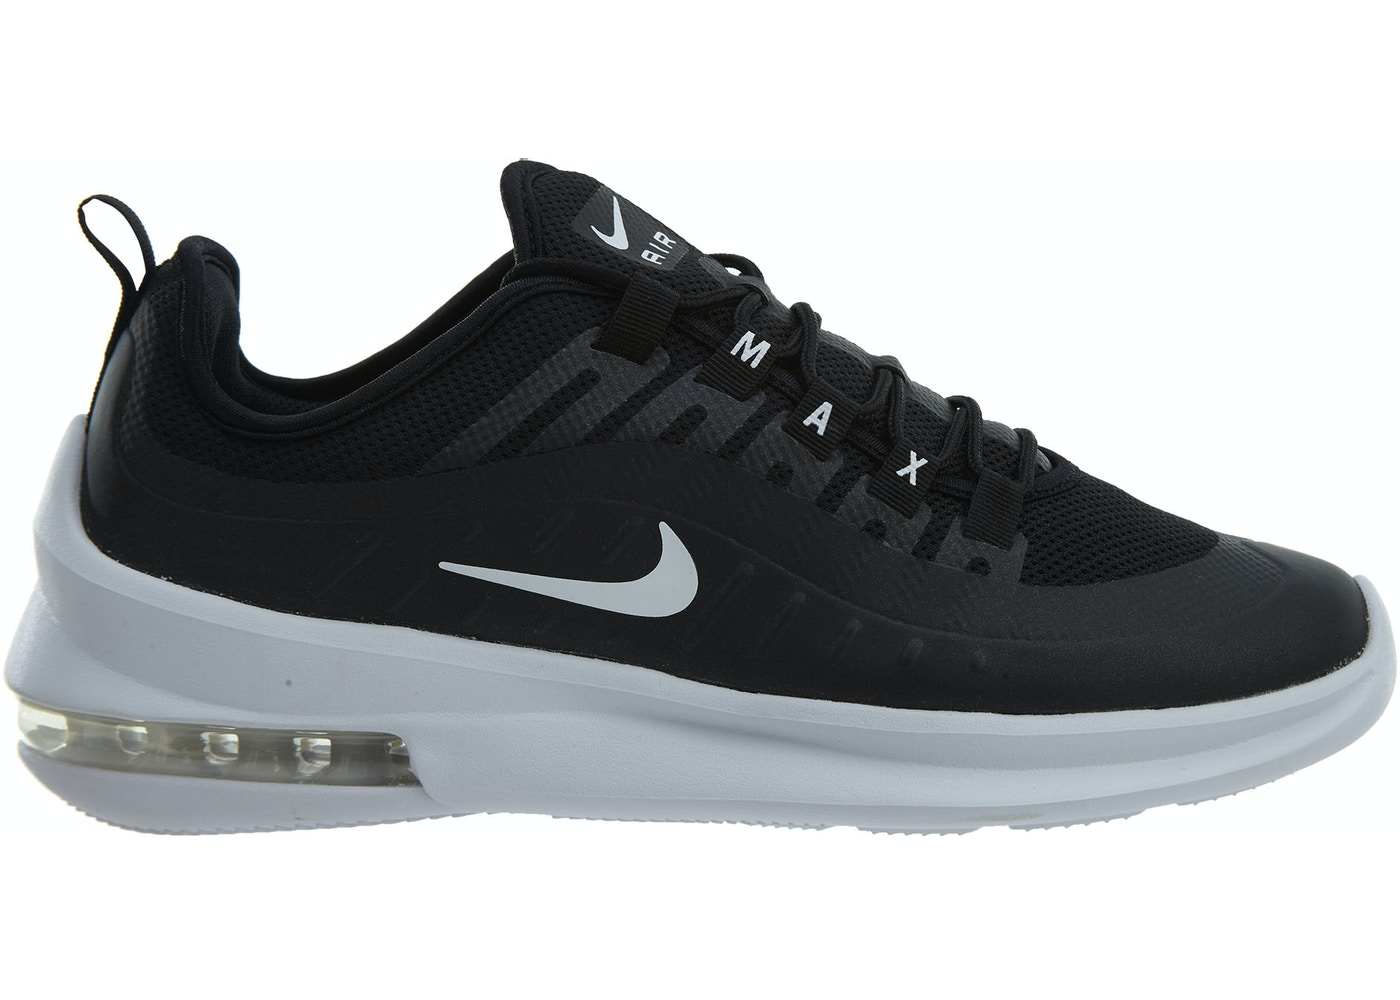 3f7c9853bd64 Air Max Axis Black White (W) - AA2168-002